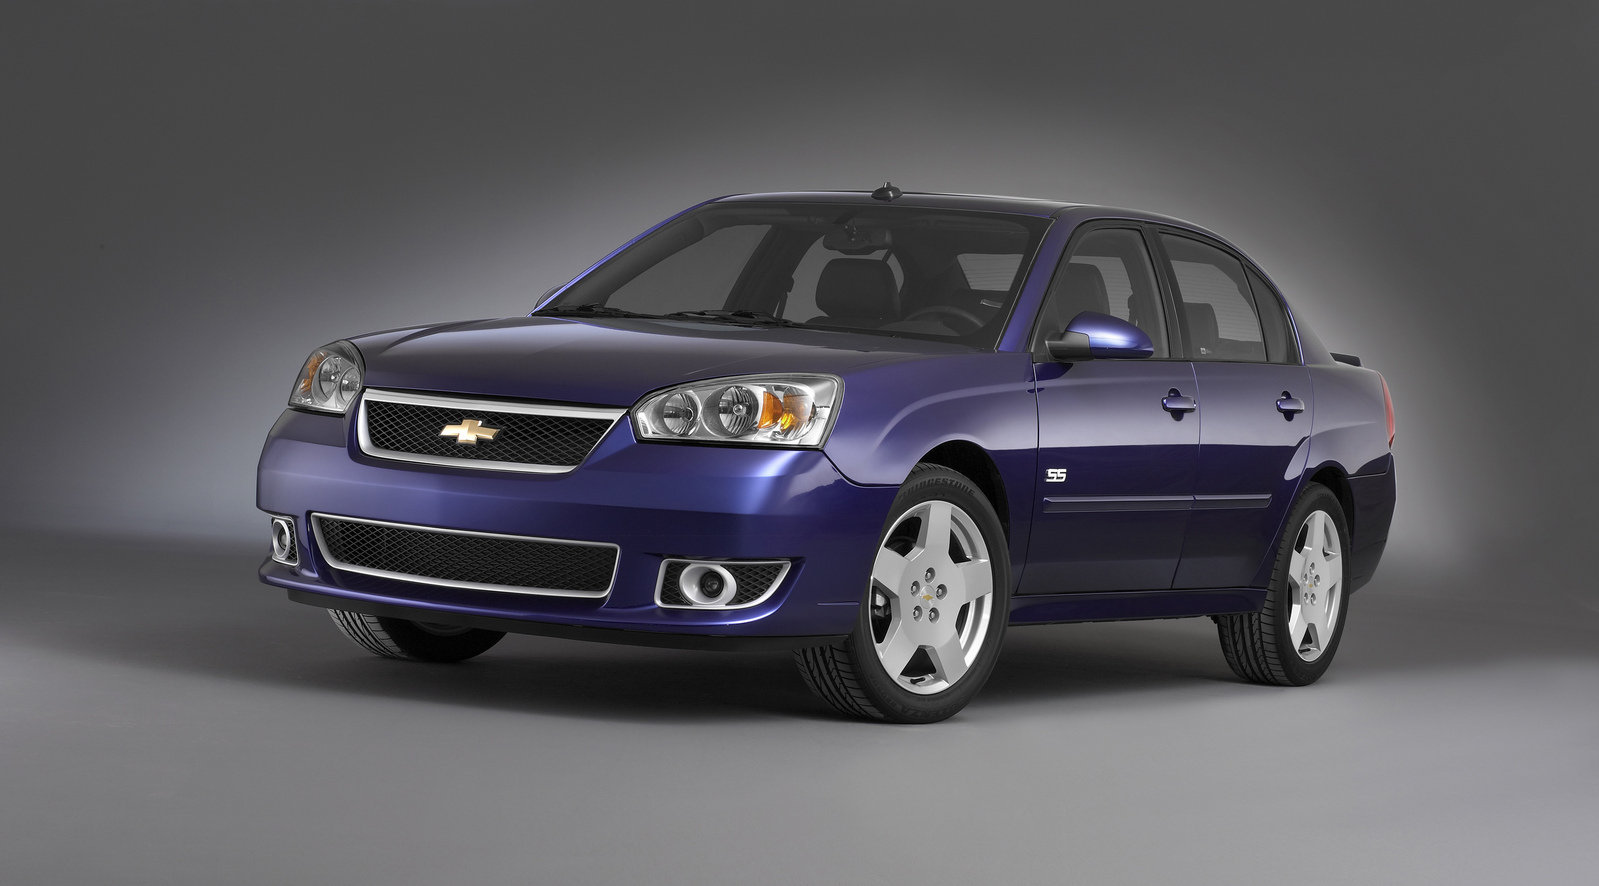 2007 chevrolet malibu ss picture 90308 car review top speed. Cars Review. Best American Auto & Cars Review